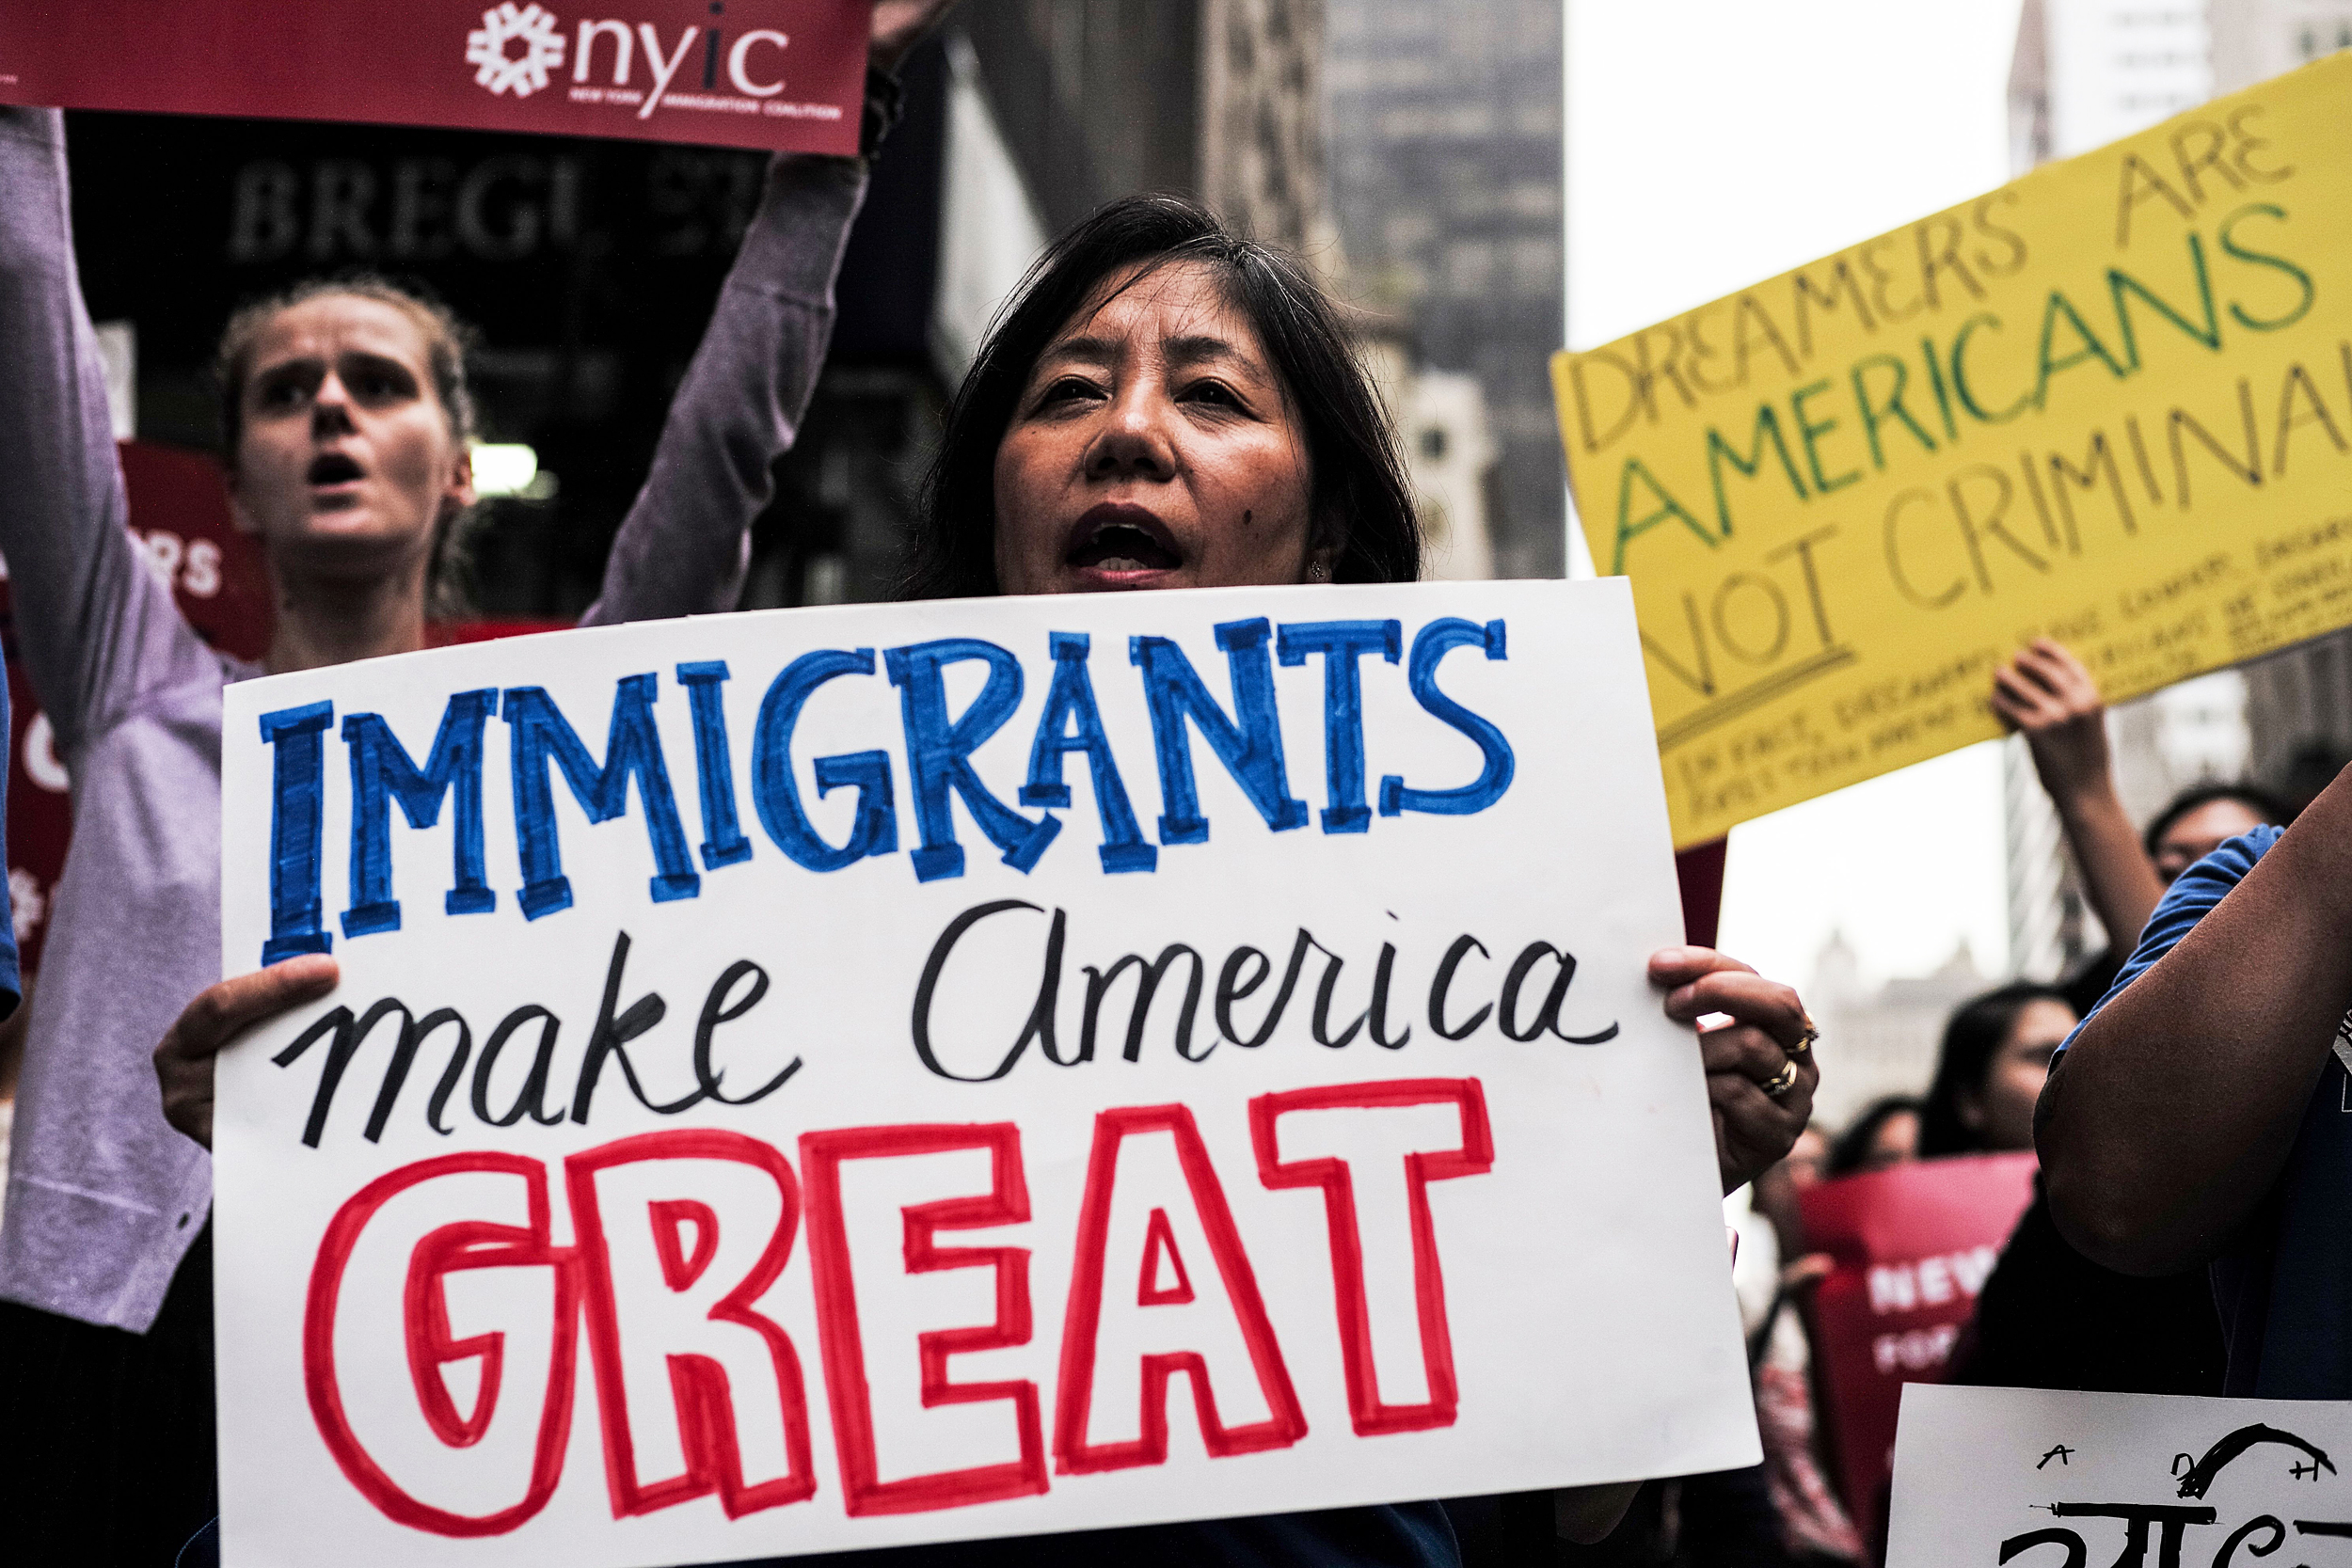 Rally in support of immigration reform - Photo JEWEL SAMAD/AFP via Getty Images